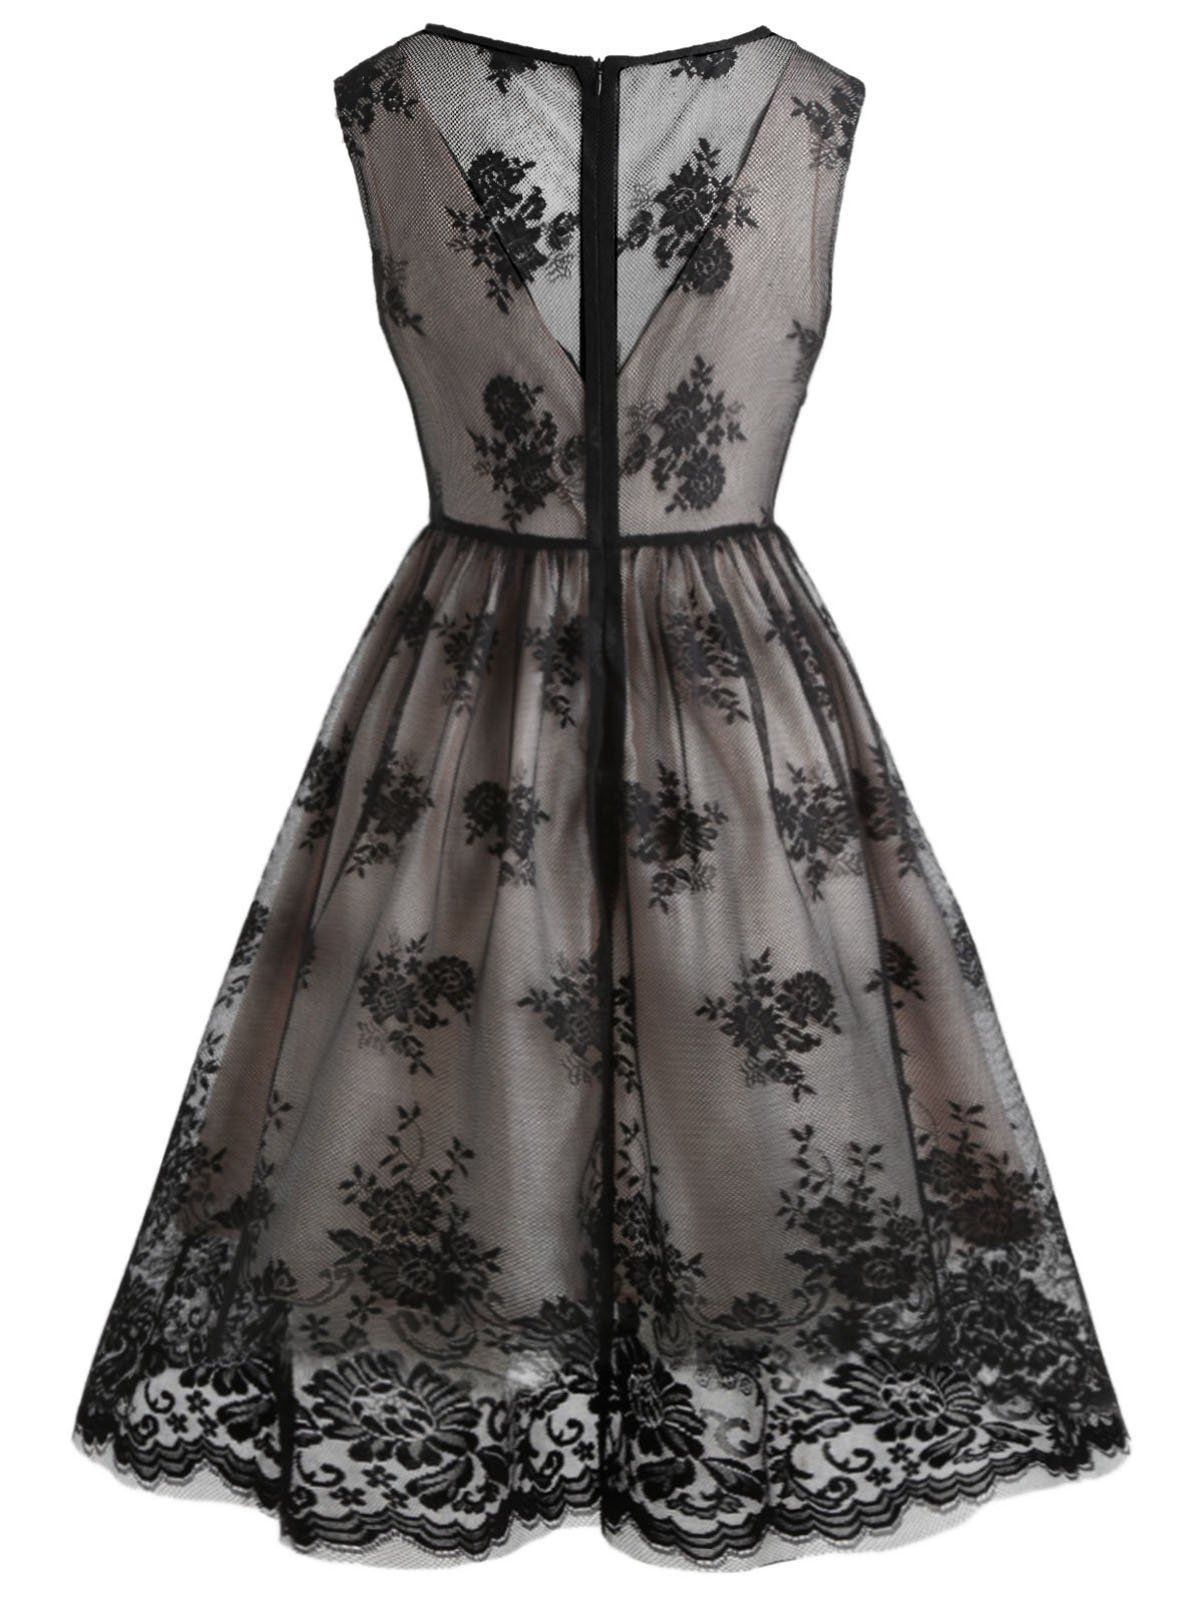 51ede9b16c35 Black 1950s Lace Floral Swing Dress – Retro Stage - Chic Vintage Dresses  and Accessories